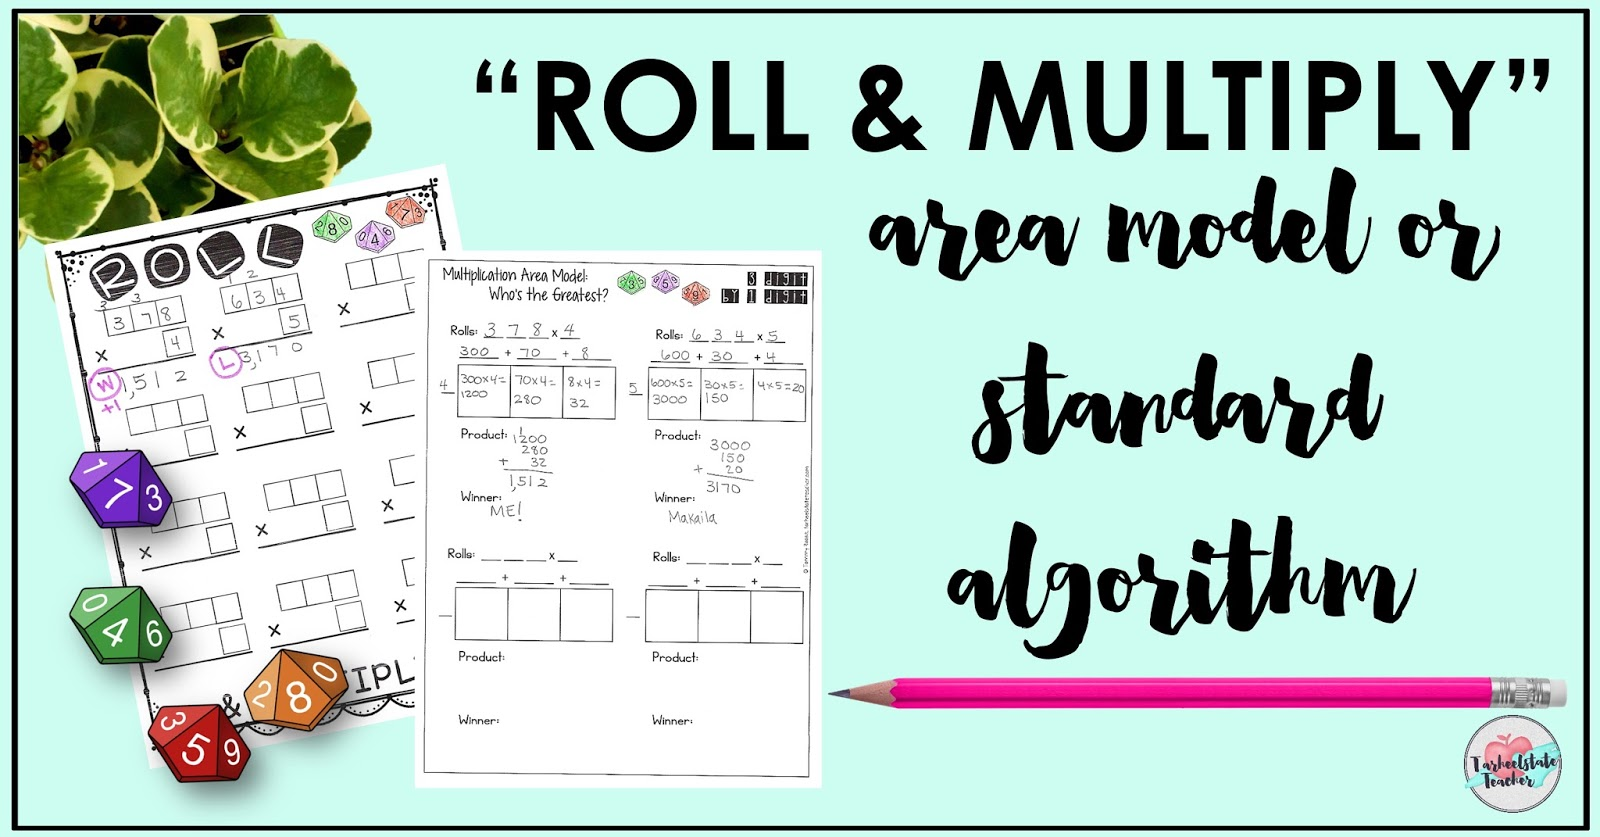 Reflections And Resources From Tarheelstate Teacher Roll